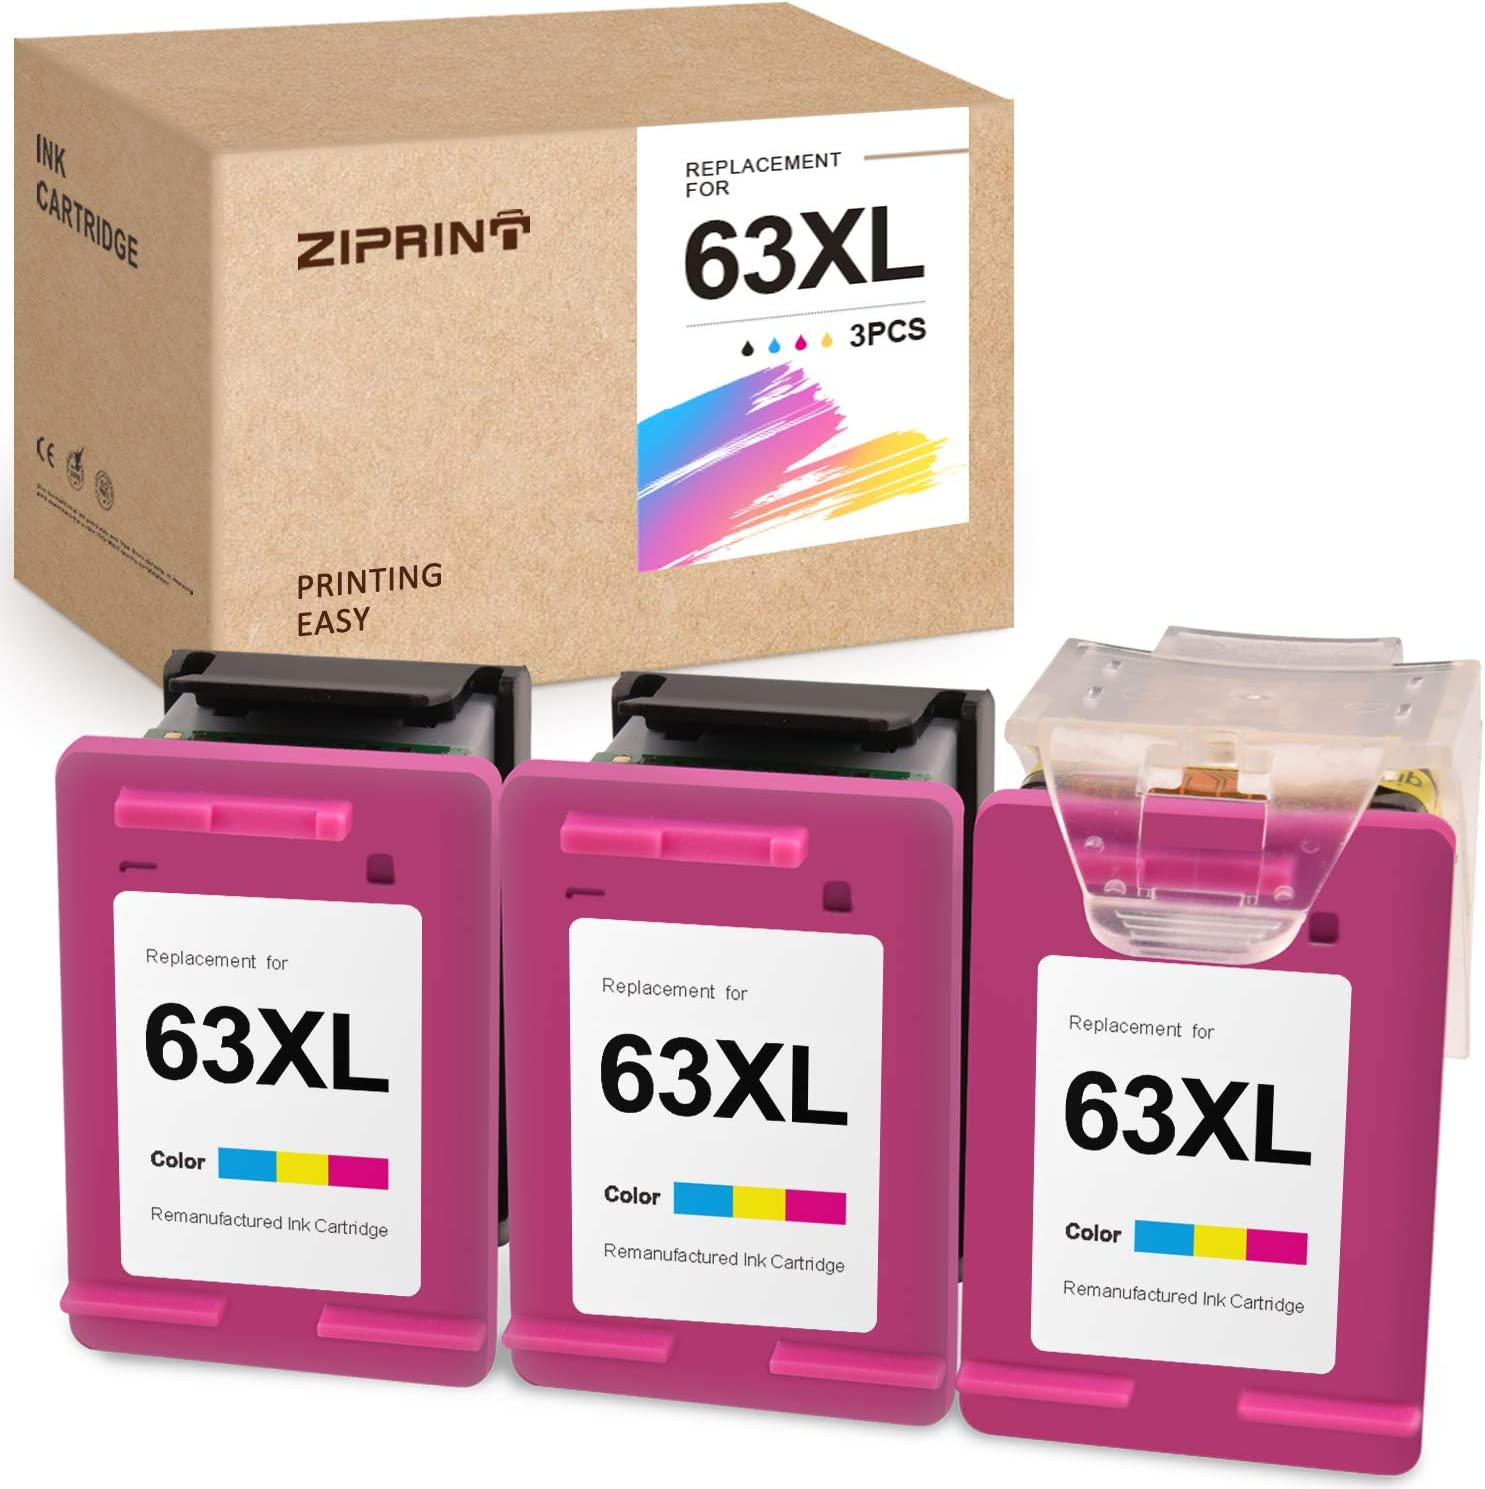 ZIPRINT Remanufactured Ink Cartridge Replacement for HP 63 63XL ECO-Saver for OfficeJet 3830 3630 3631 3632 4650 4652 4655 5252 5255 5258 DeskJet 1112 2130 2132 Envy 4520 4512 (3 Tri-Color)